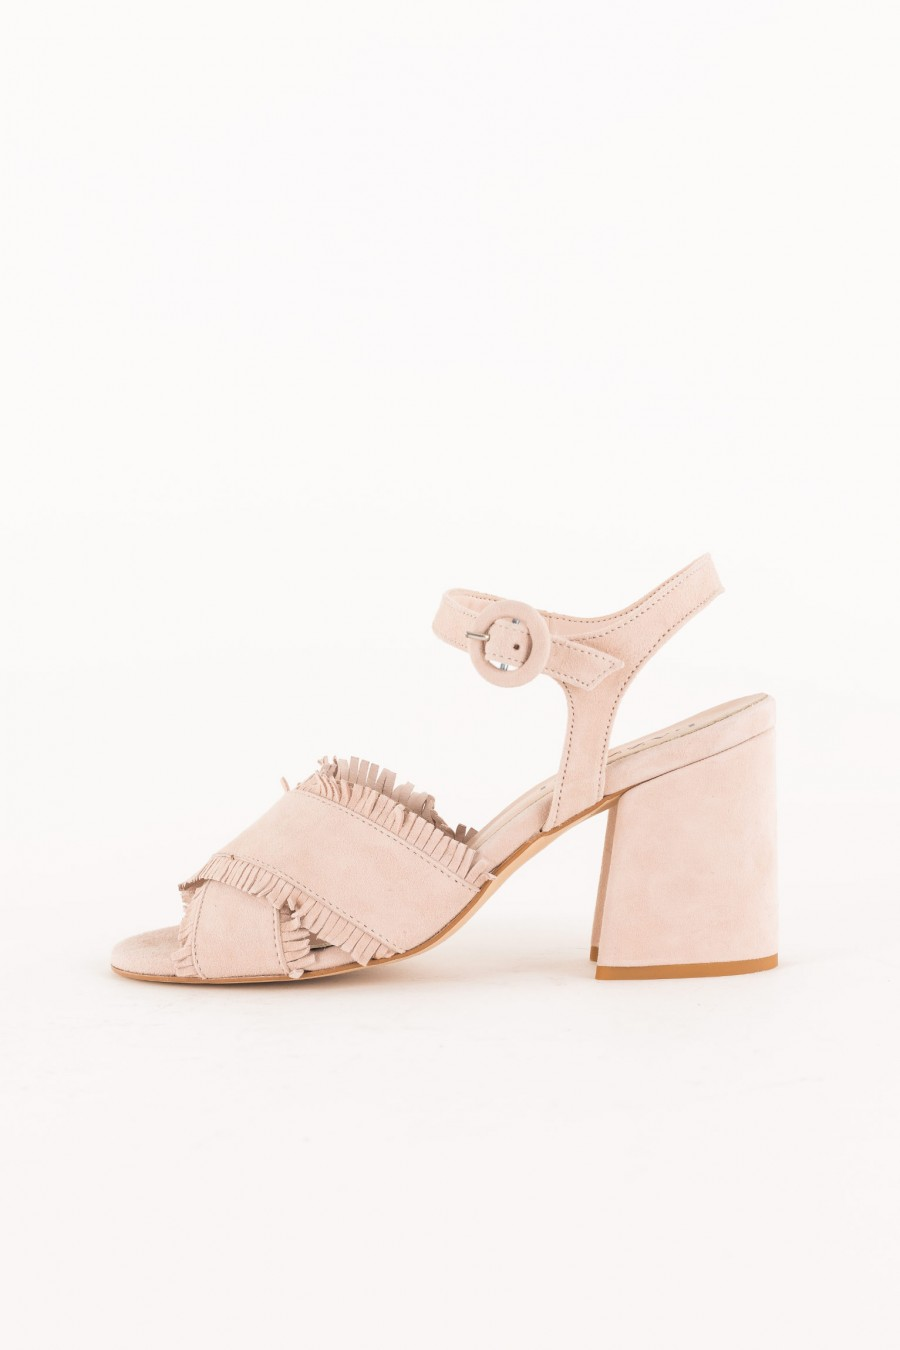 powder pink sandal